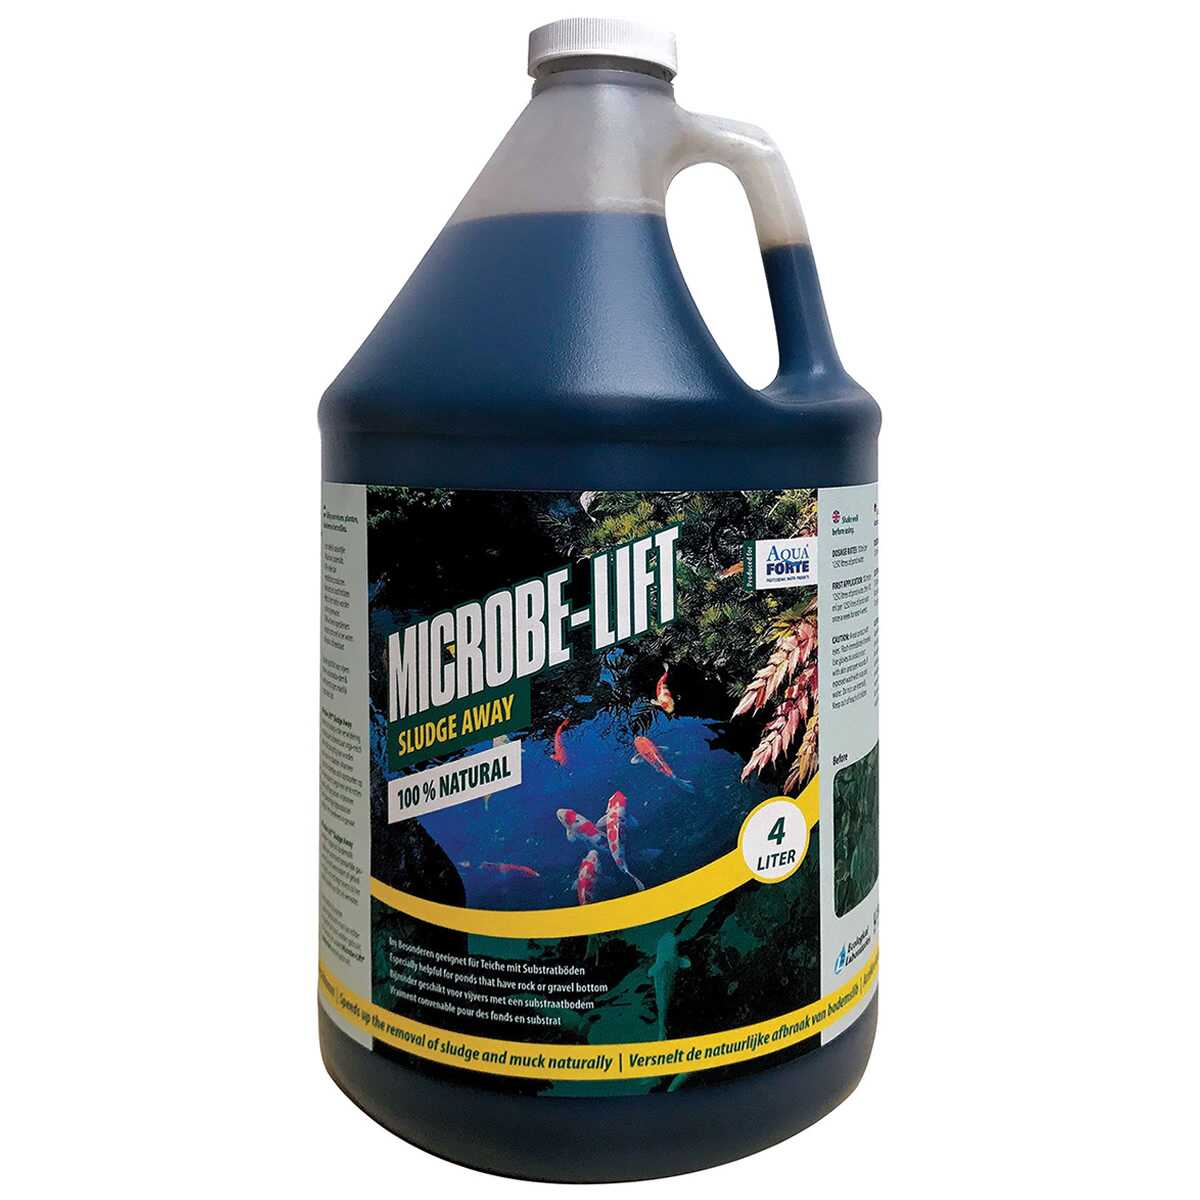 Microbe Lift Sludge Away (Schlammabbau) 4 Liter